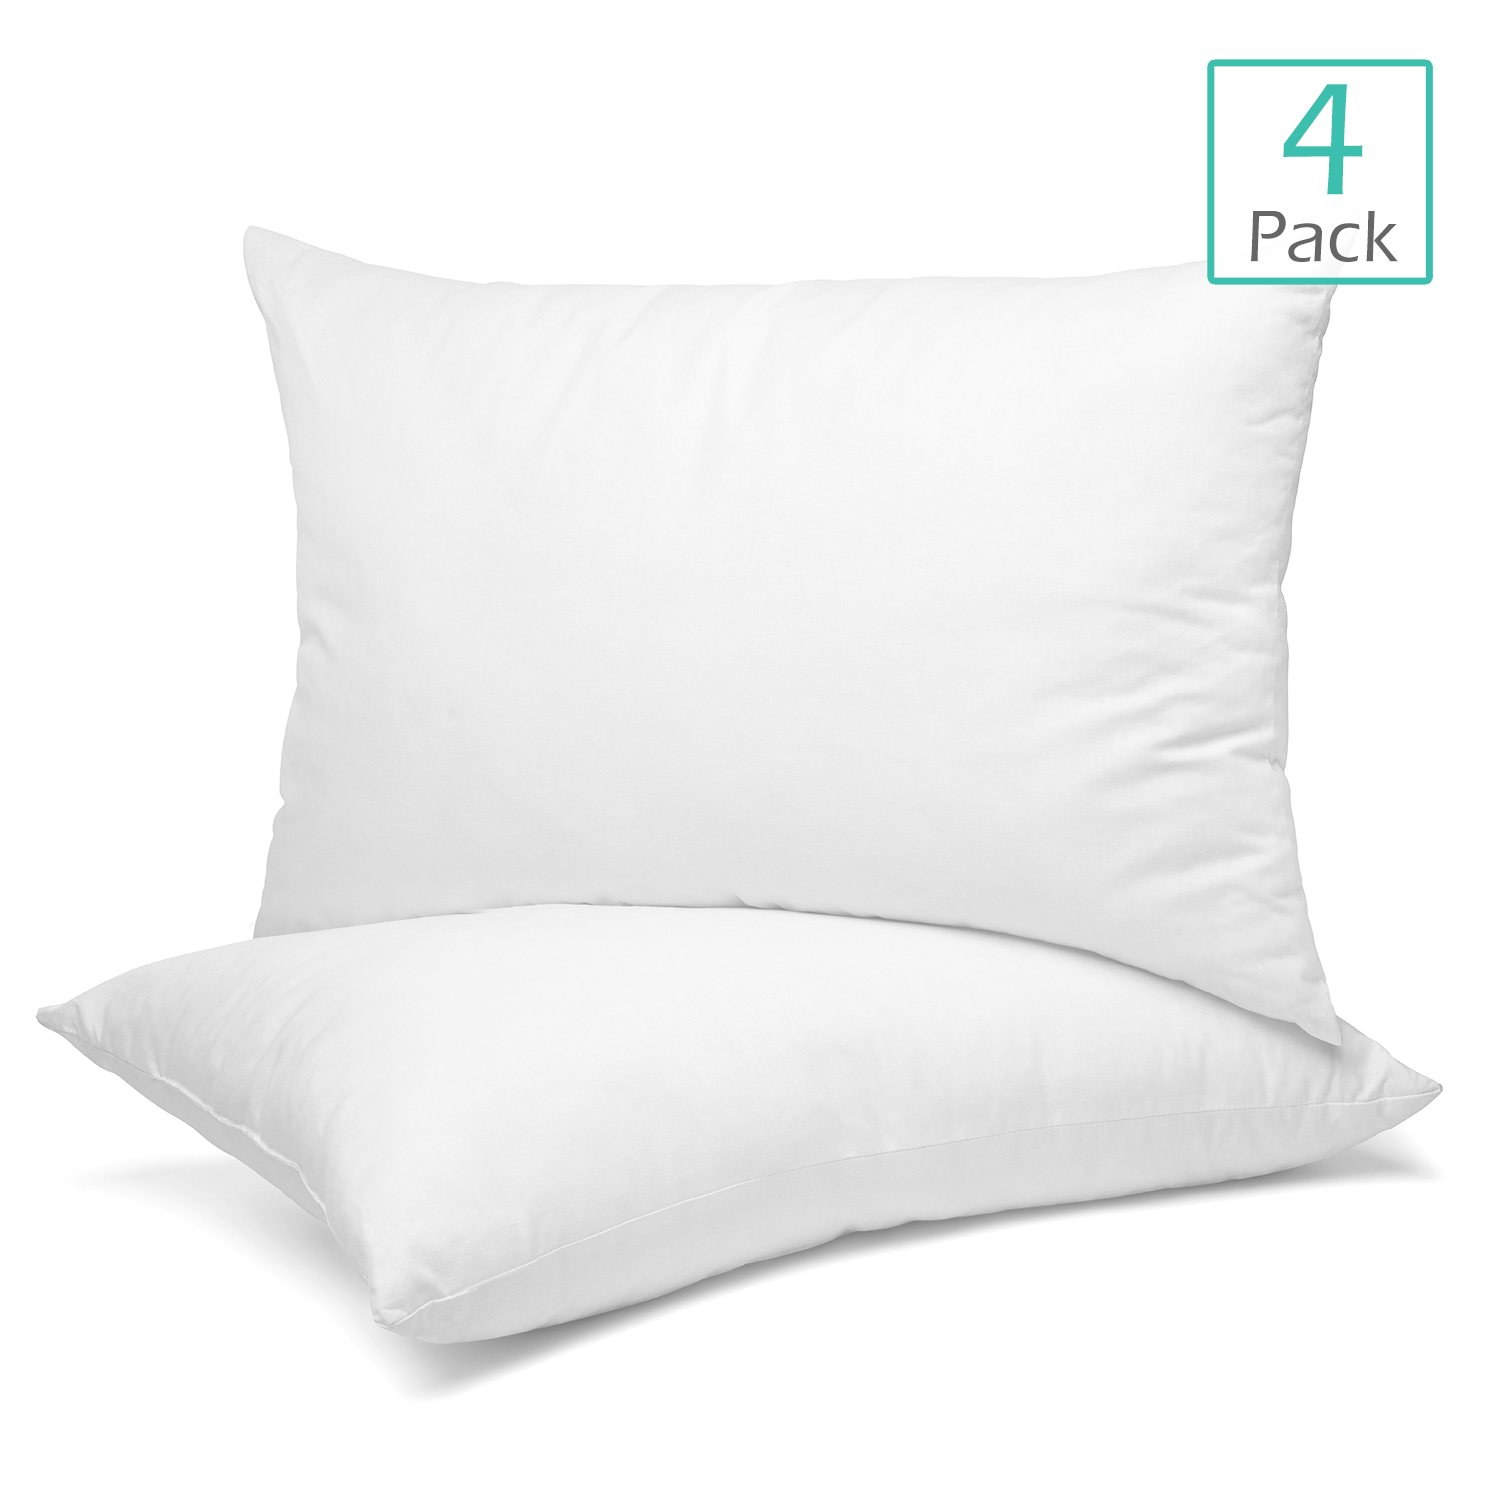 toddler pillow for sleeping 13 x 18 inches machine washable small baby pillow soft 100 cotton cover hypoallergenic kids pillows pack of 4